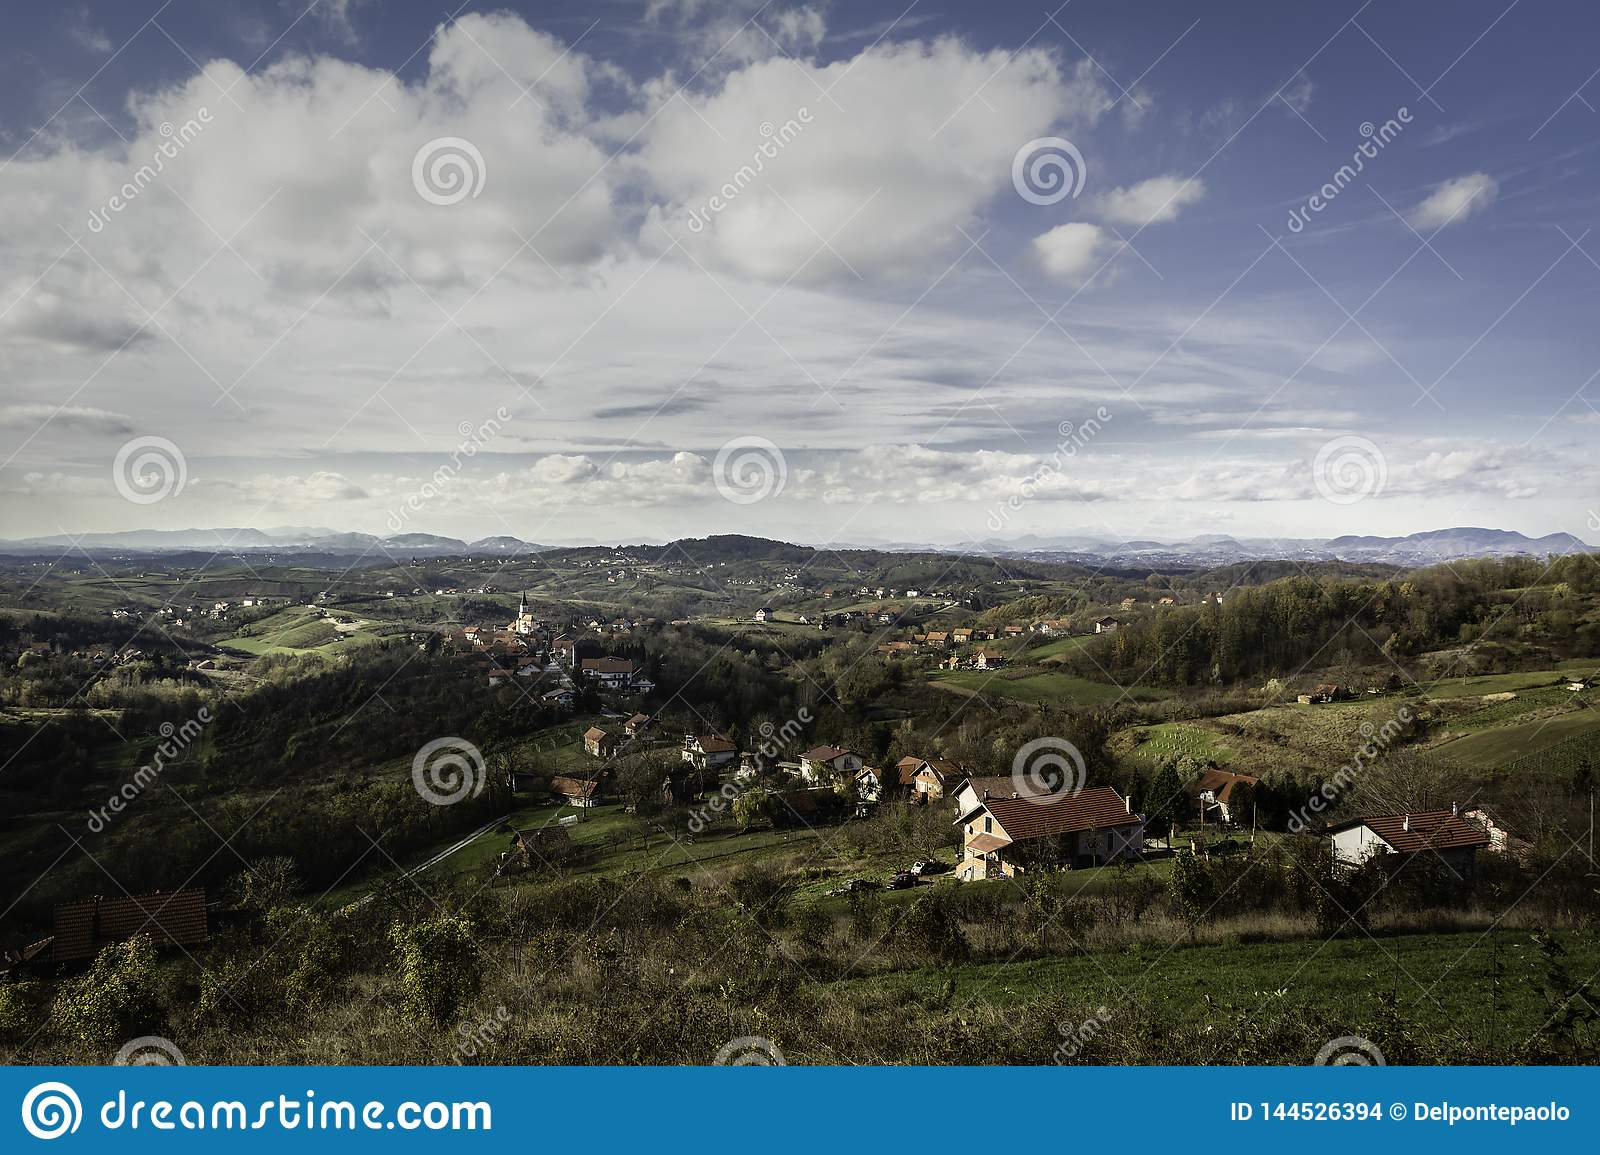 Hilly area of Zagorje in early autumn with lot of villages and mountains in distance